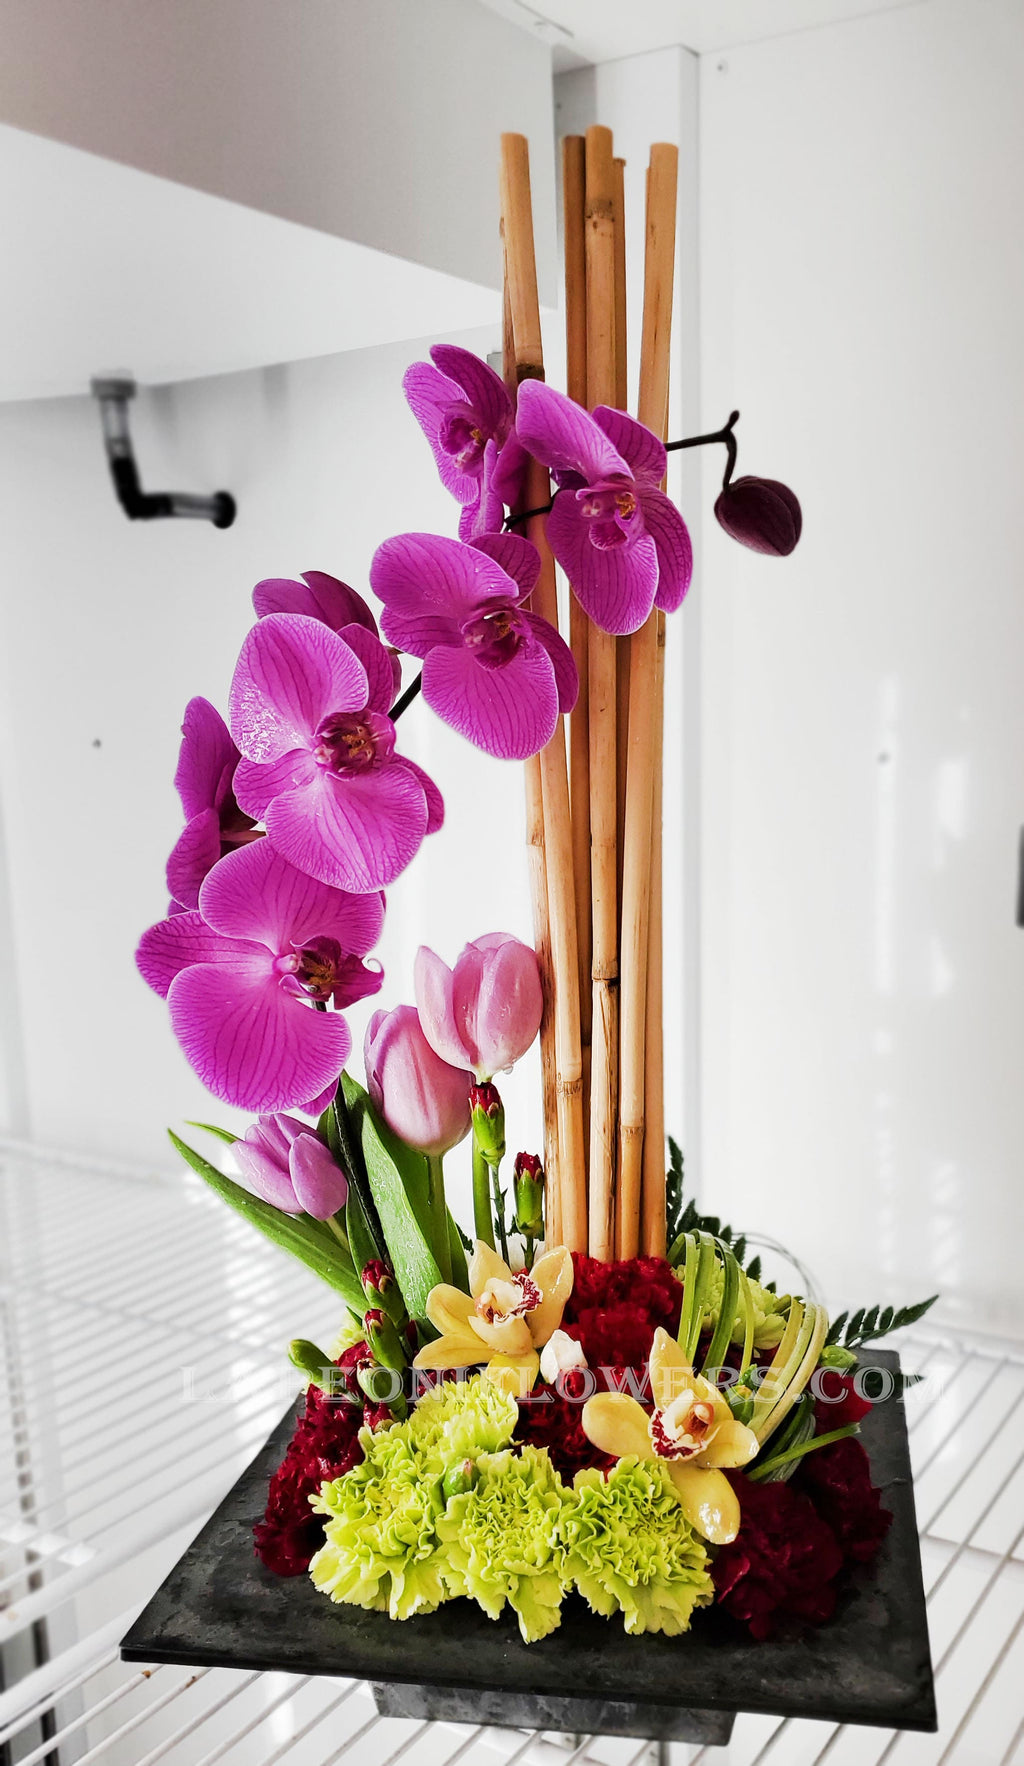 Orchids Artistry - Lapeoni Flowers and Events